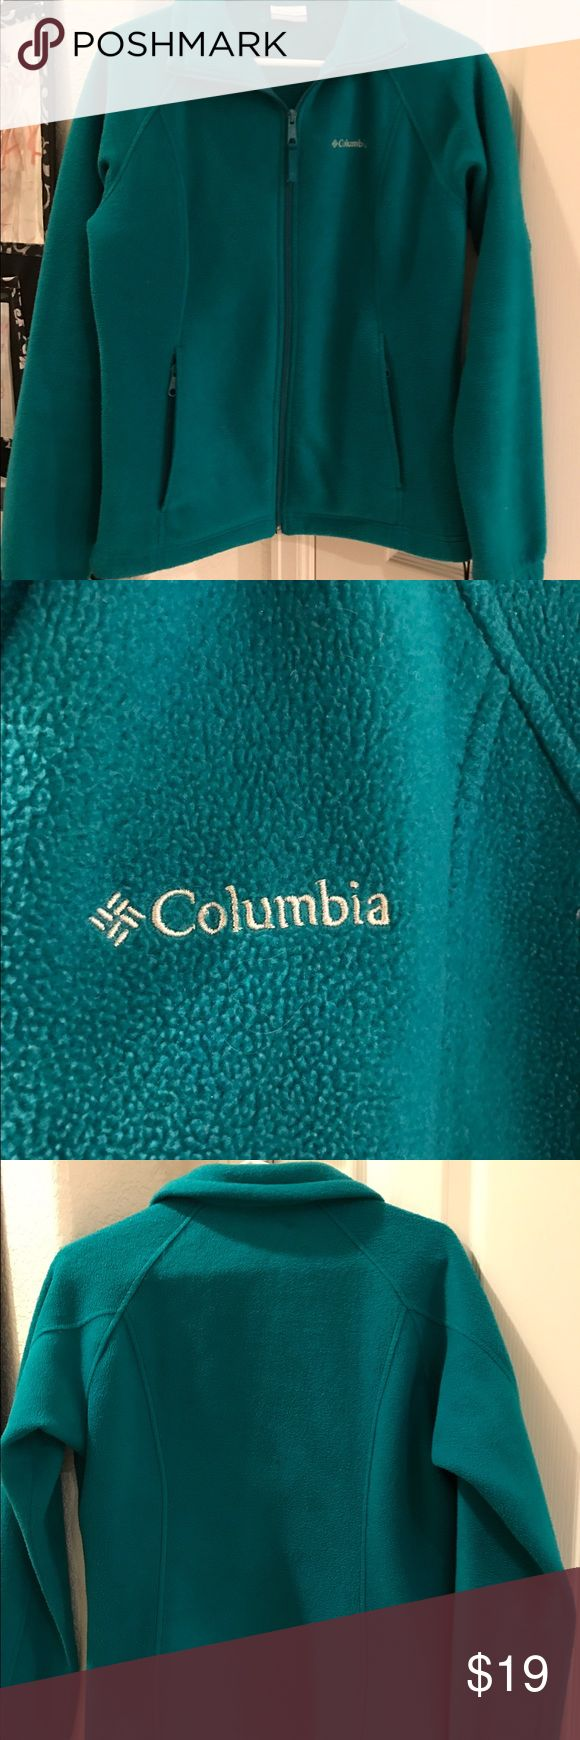 Teal Columbia Coat Fleece, very warm and soft! Great condition! Columbia Jackets & Coats